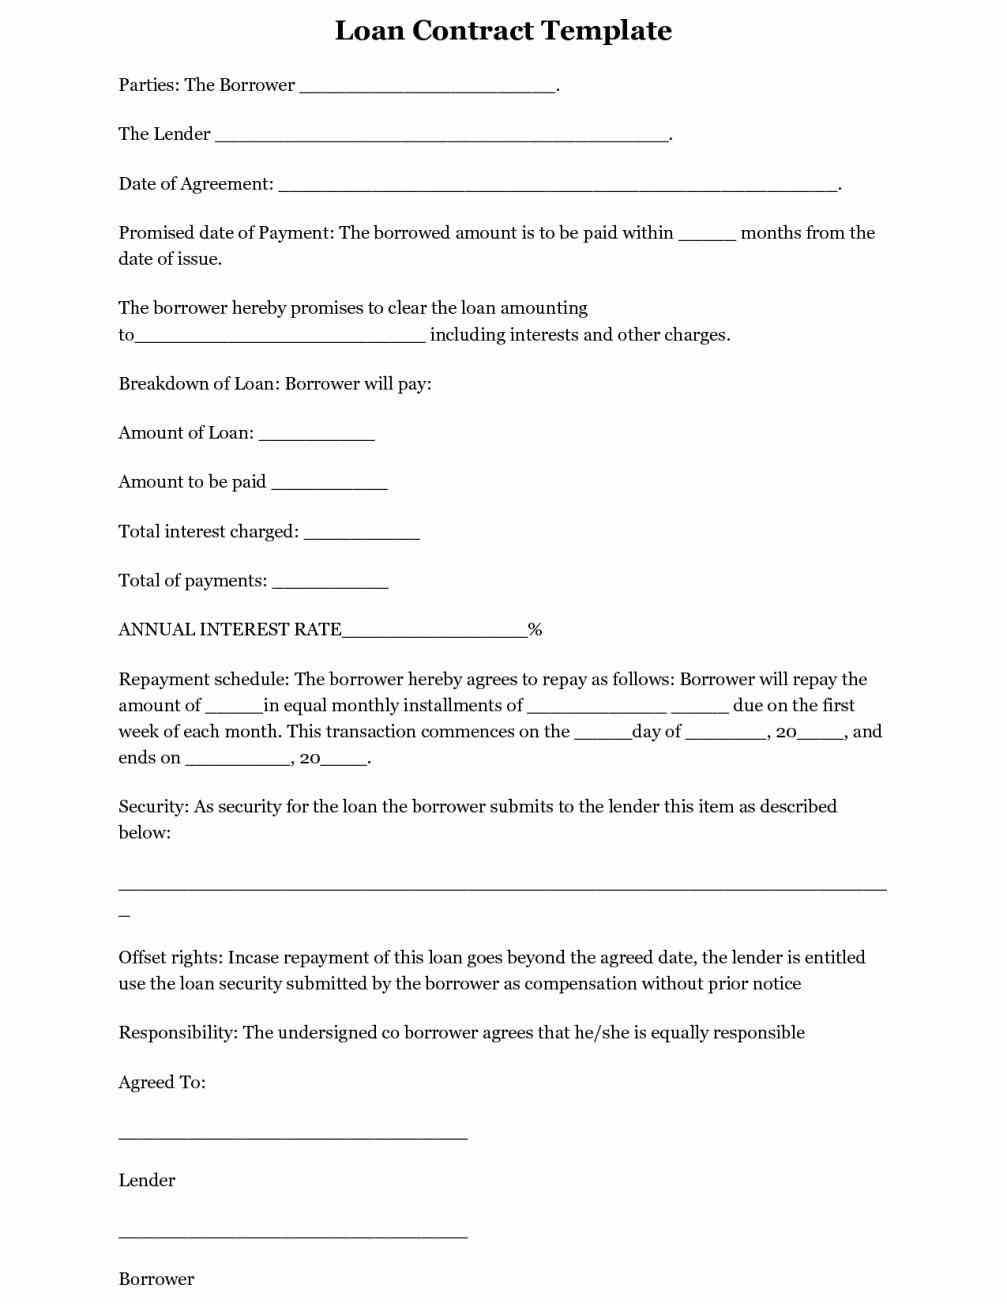 Loan Contract Template Word Simple Order Form Template Word Form Templates  Timeline Template .